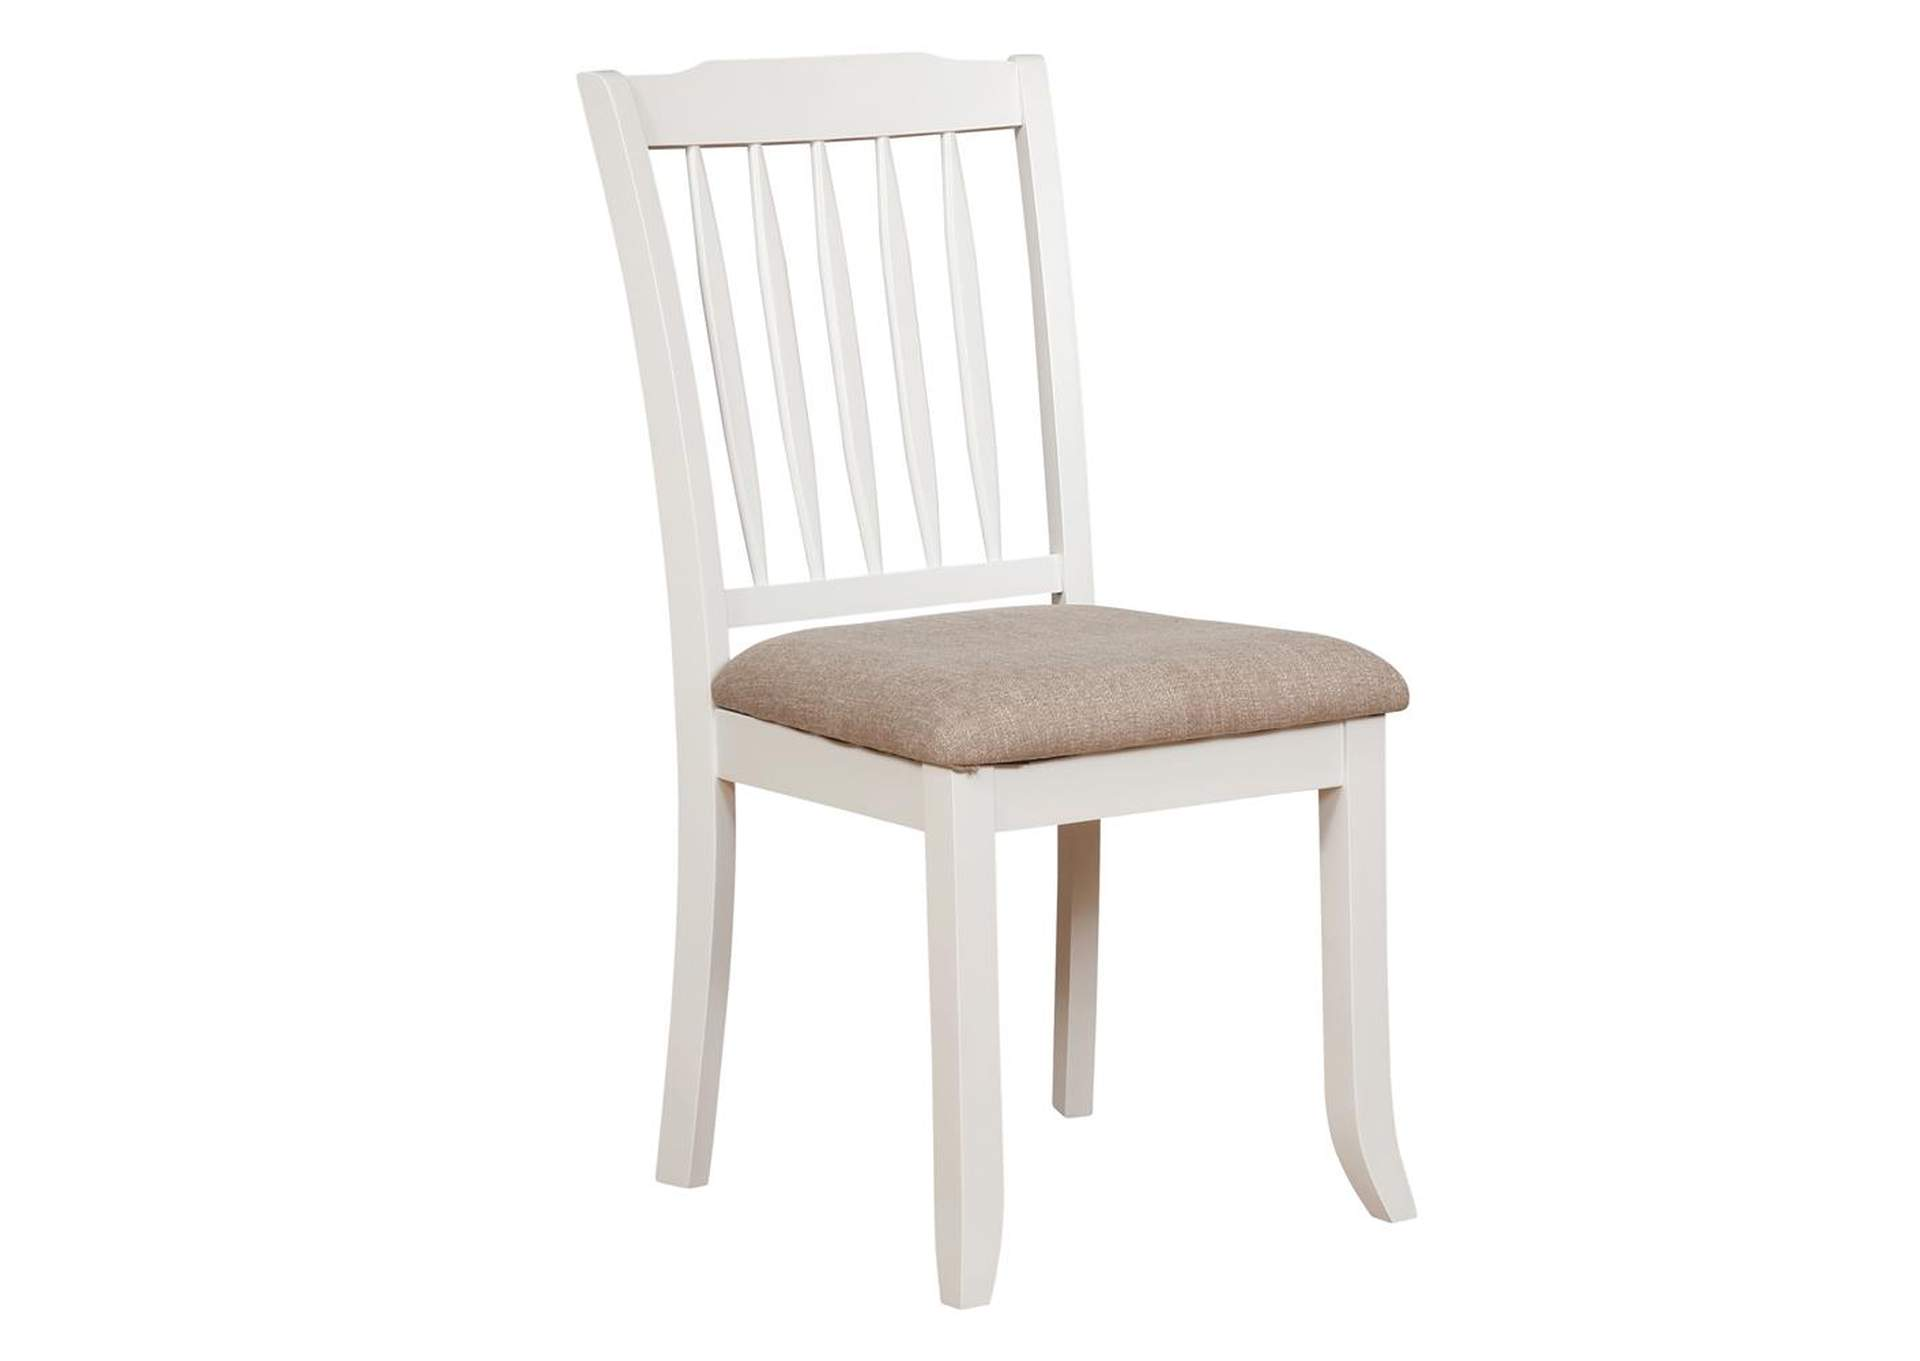 Westar Hesperia Cottage White Side Dining Chair [Set of 2],Coaster Furniture